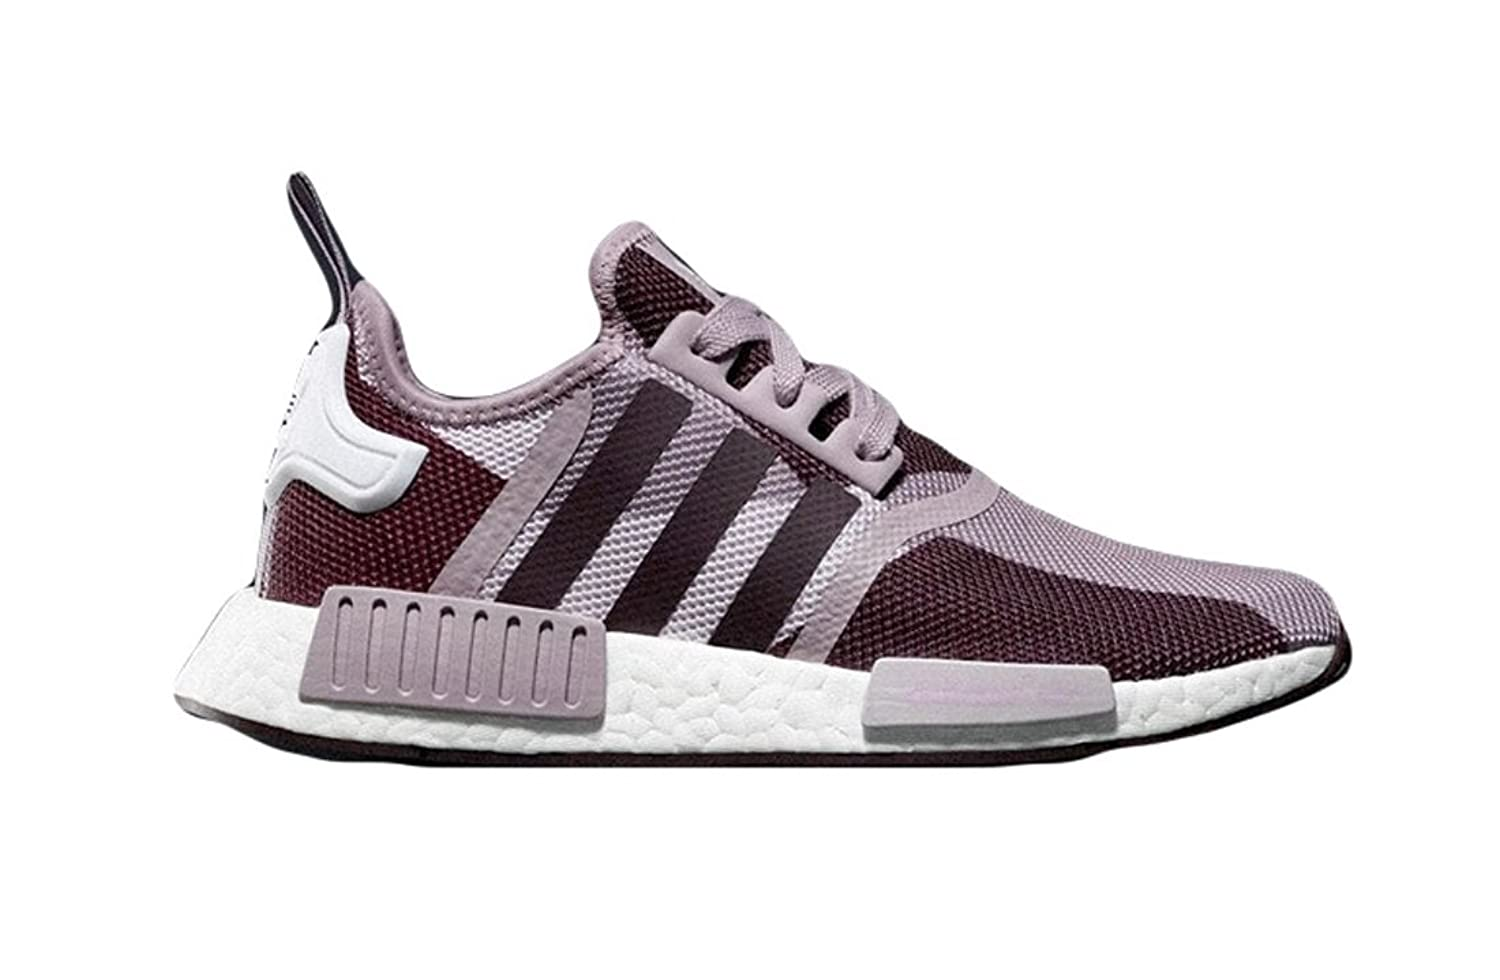 Cheap Adidas NMD R2. Olive Size 10 ( Clothing & Shoes ) in Aurora, CO